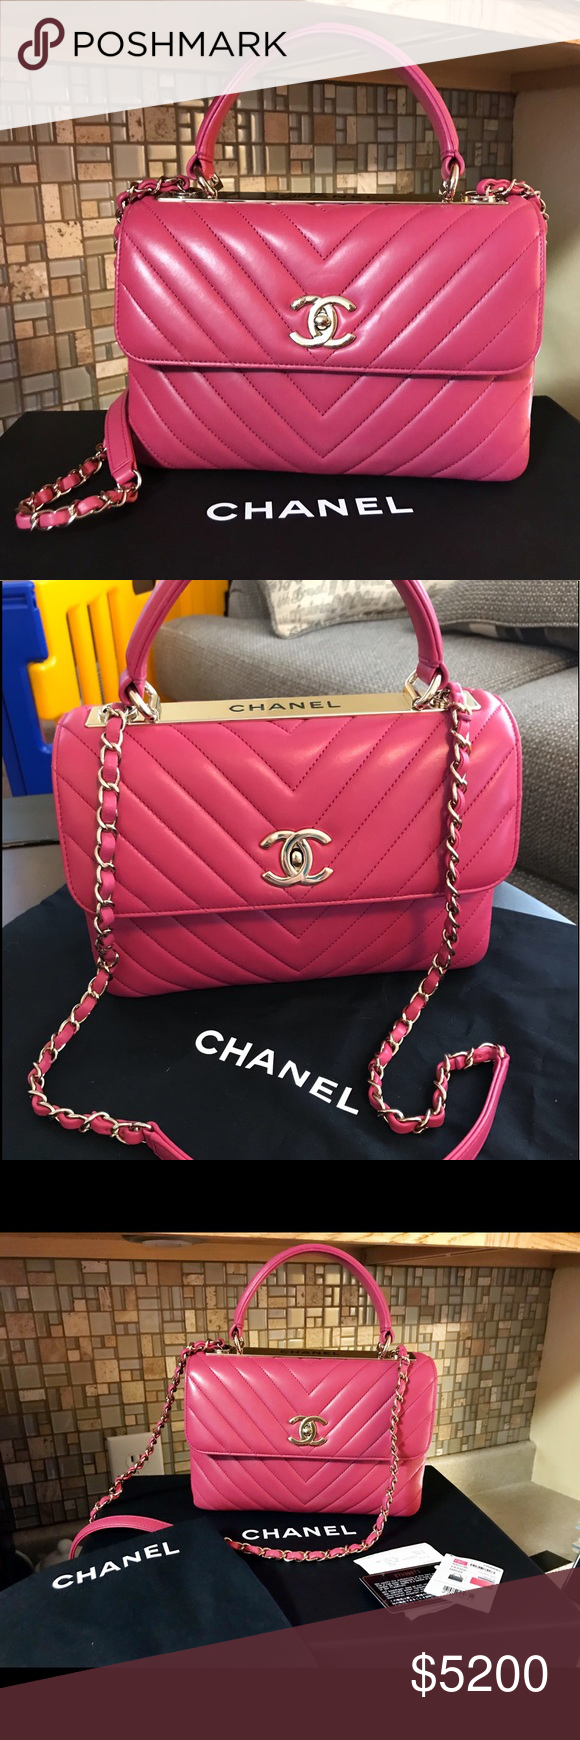 4ed6d376c868 CHANEL New 18' Chevron Pink Sm Trendy Bag Auth. CHANEL 2018 New Top Handle  Sm. Chevron Trendy. Bag was purchased only 2 months ago from Michagan Ave.